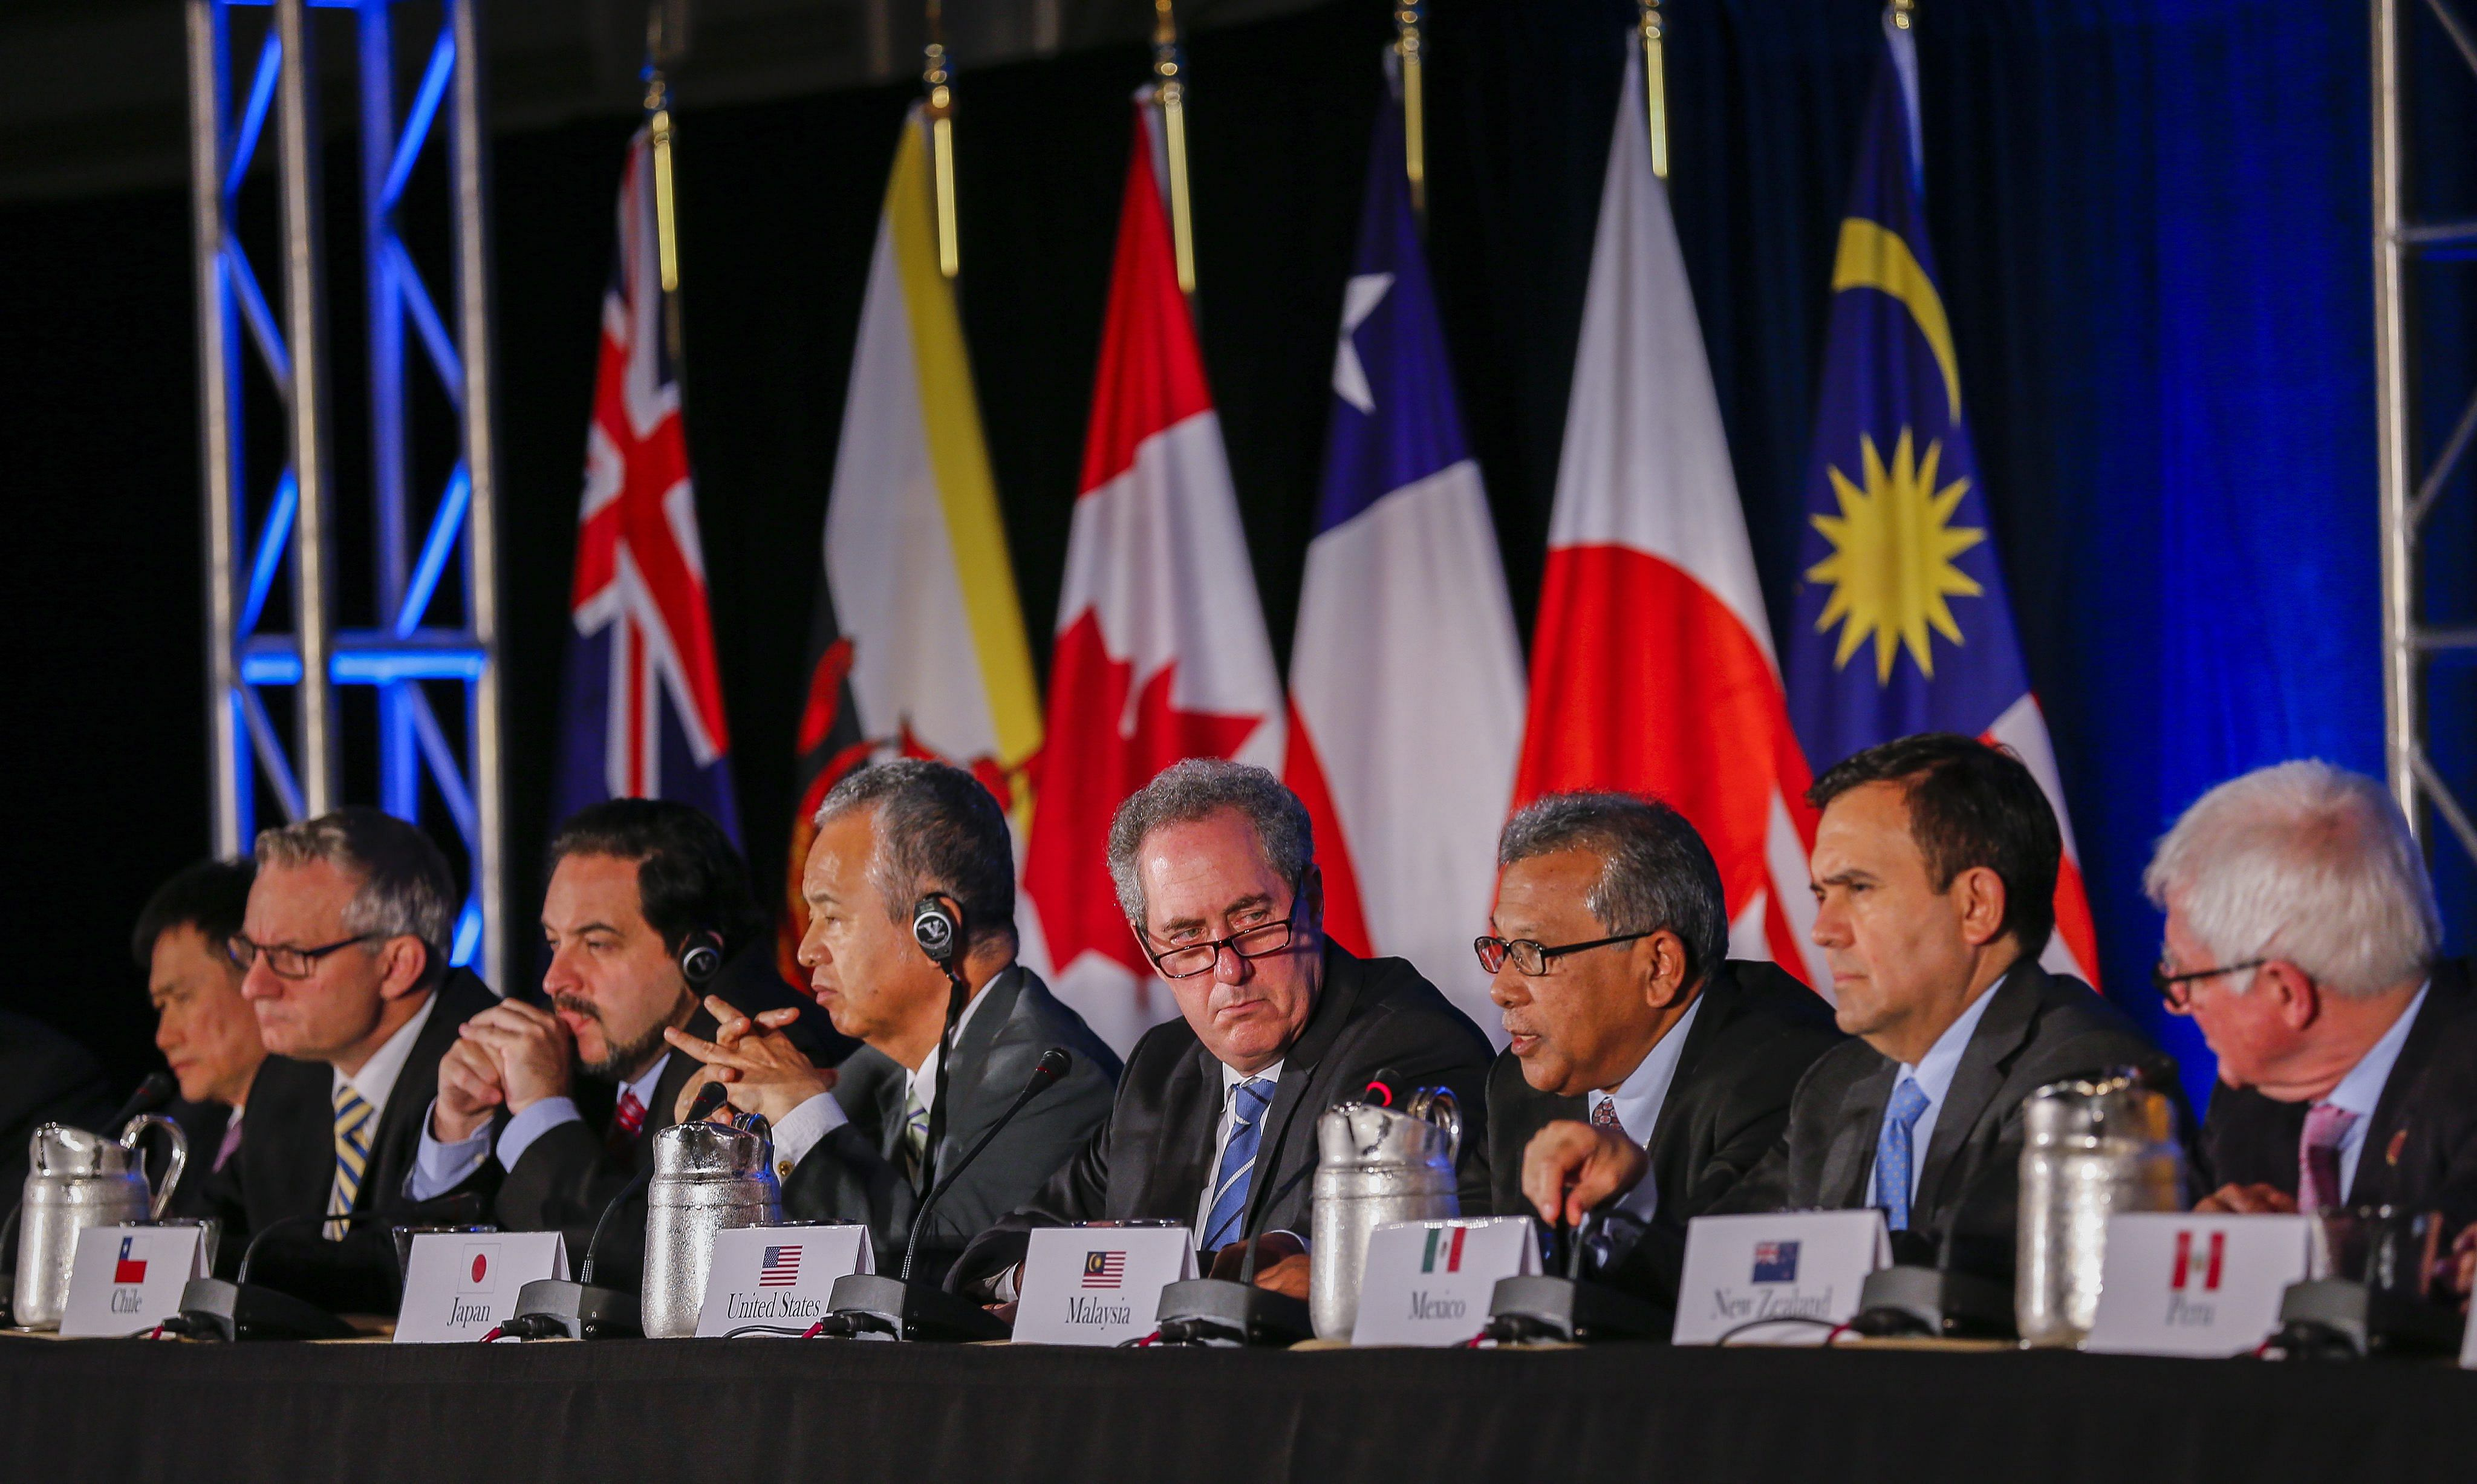 United States Trade Representative Michael Froman (centre) being flanked by international counterparts during the closing press conference after an agreement was reached by 12 TPP member countries in Atlanta, in the US, on Oct 5.